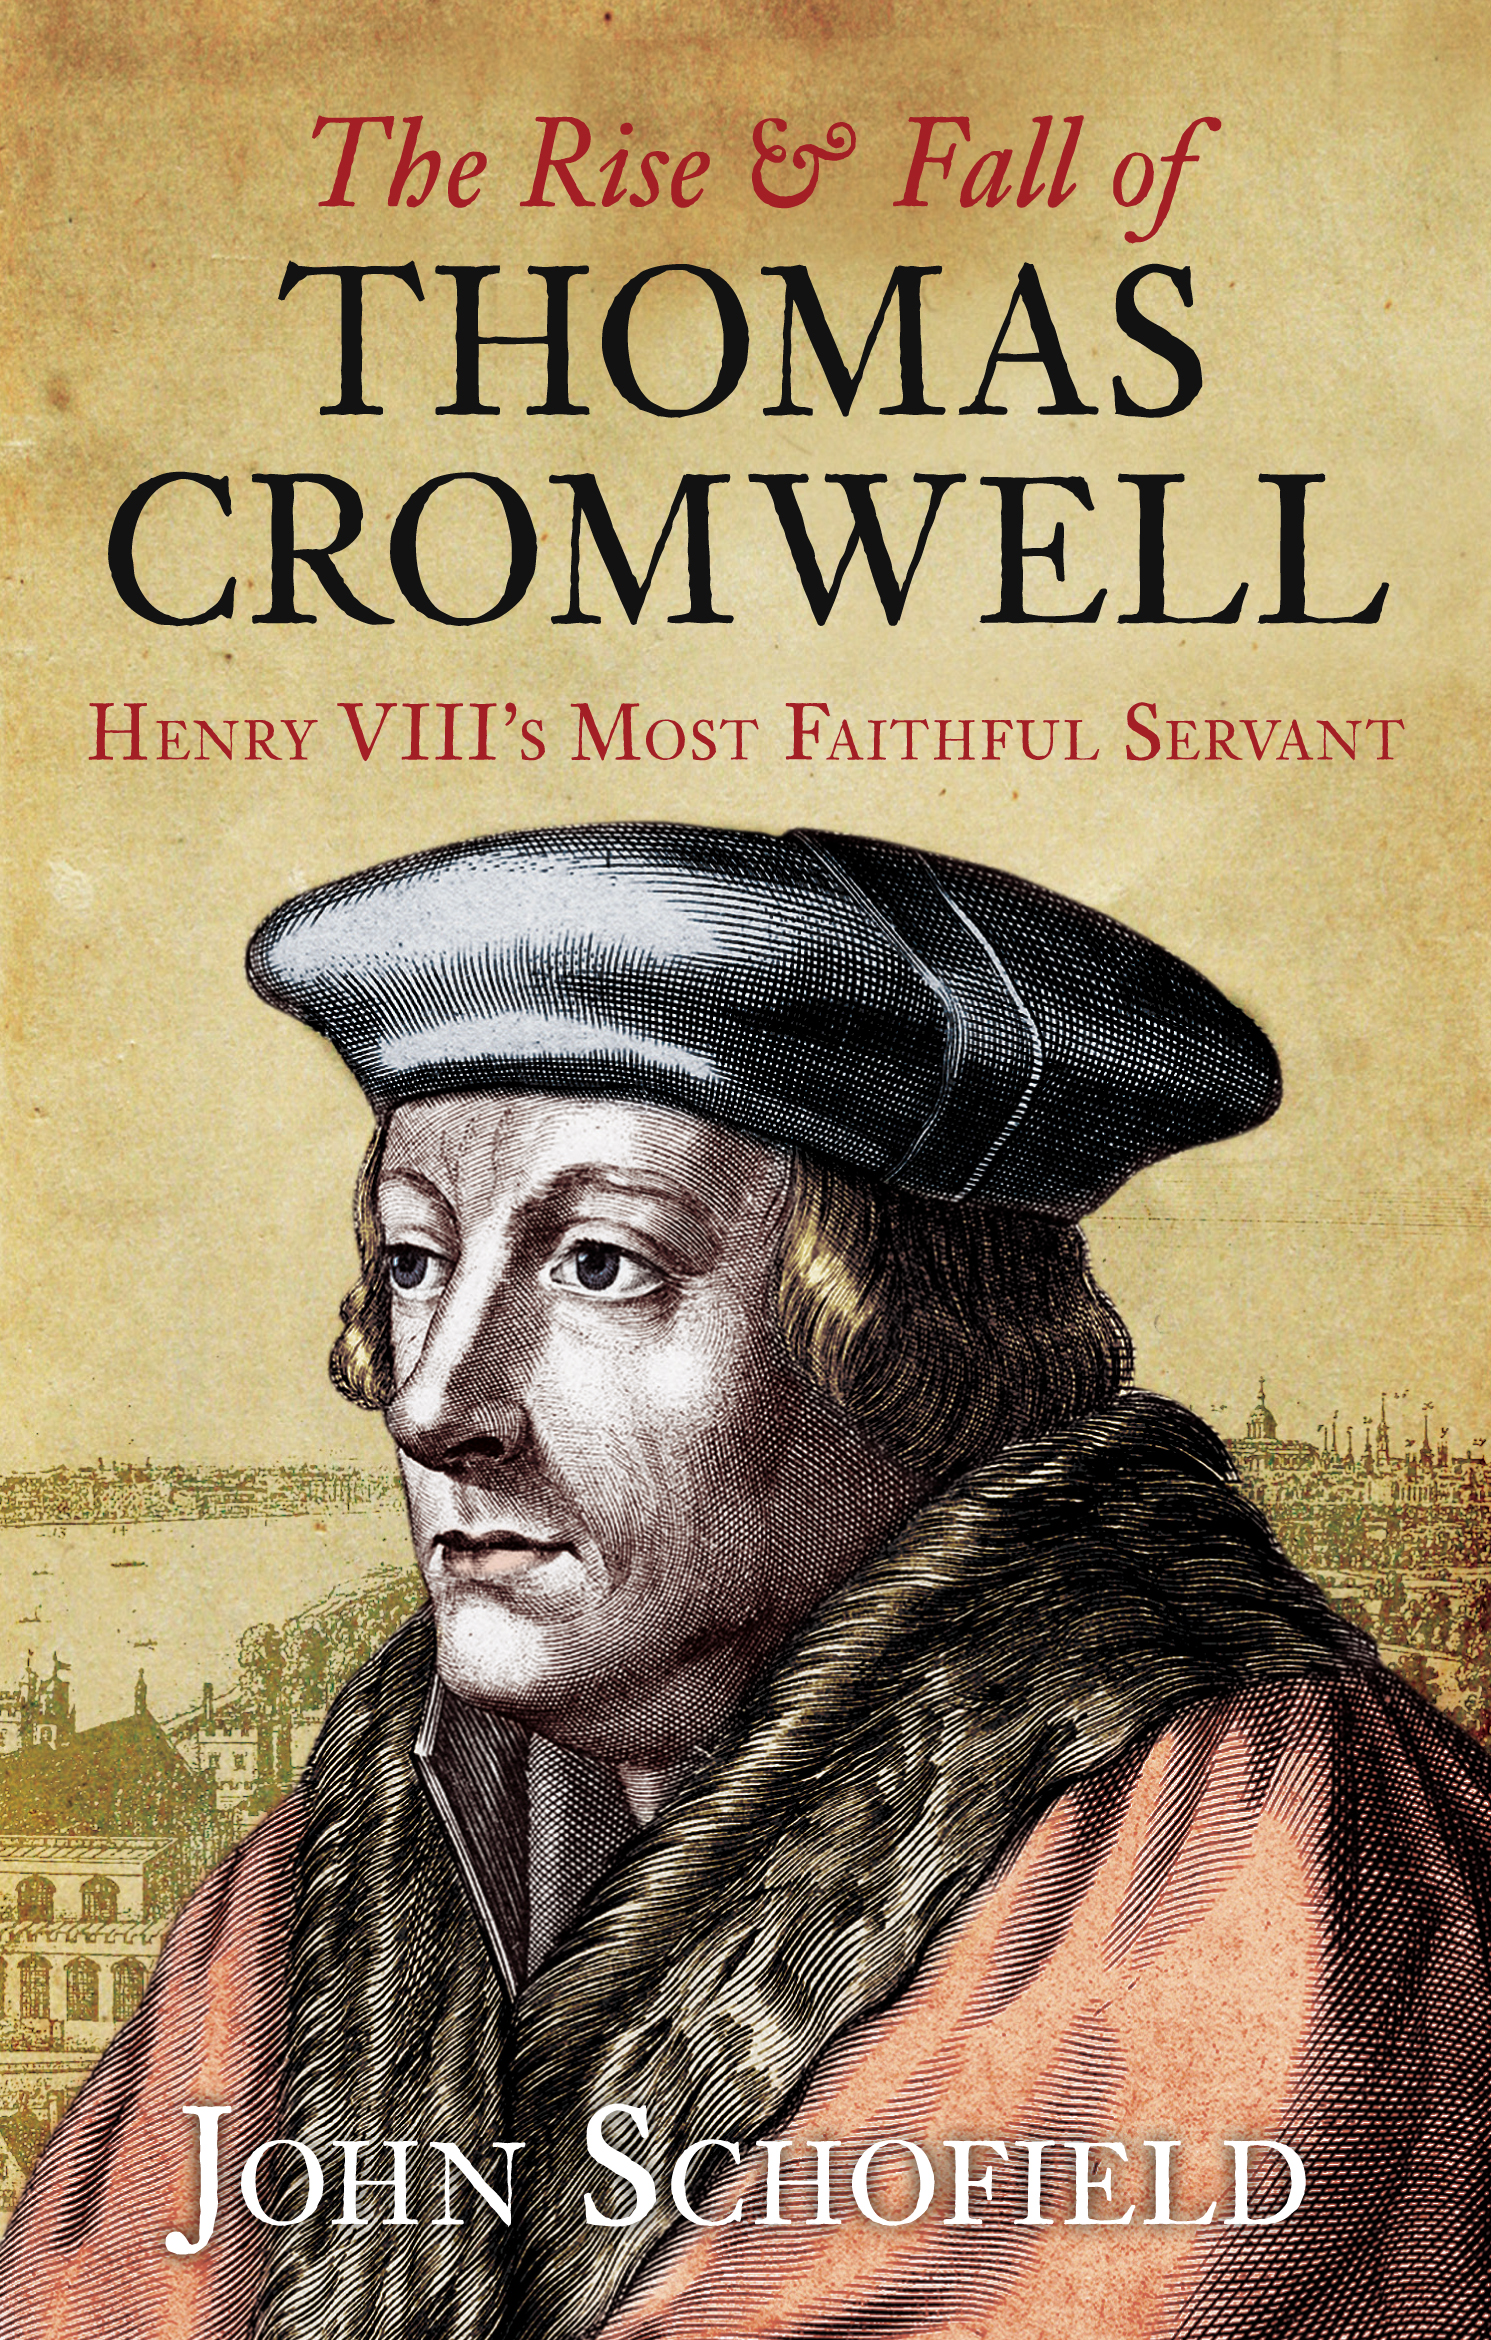 The Rise and Fall of Thomas Cromwell By: John Schofield